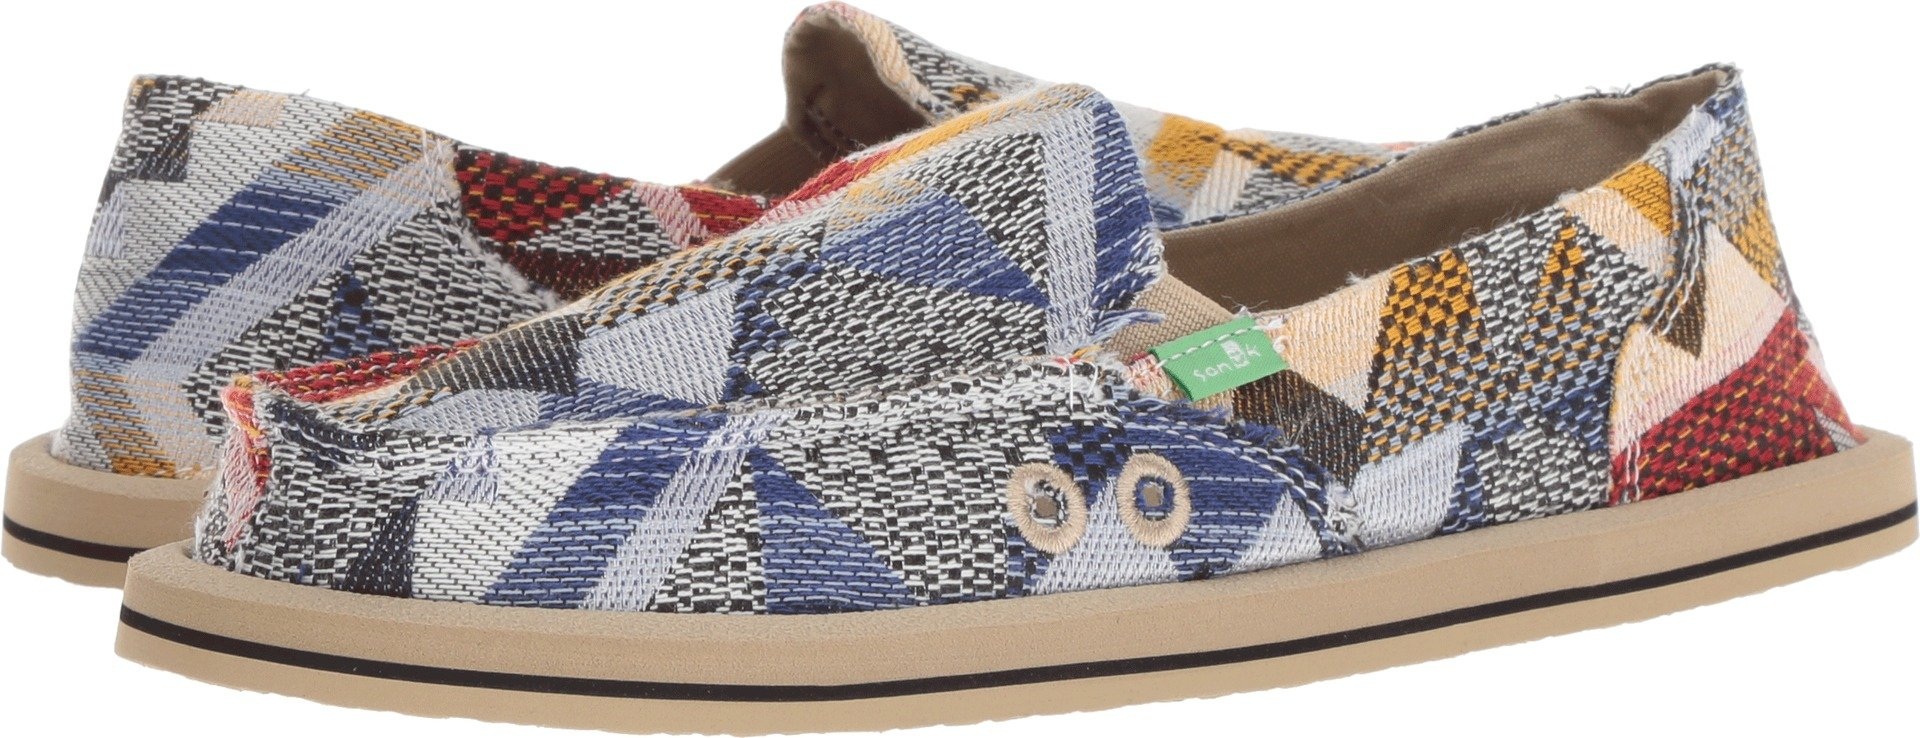 Sanuk Women's Donna Geo Patch Loafer Flat, Blue/Multi, 08 M US